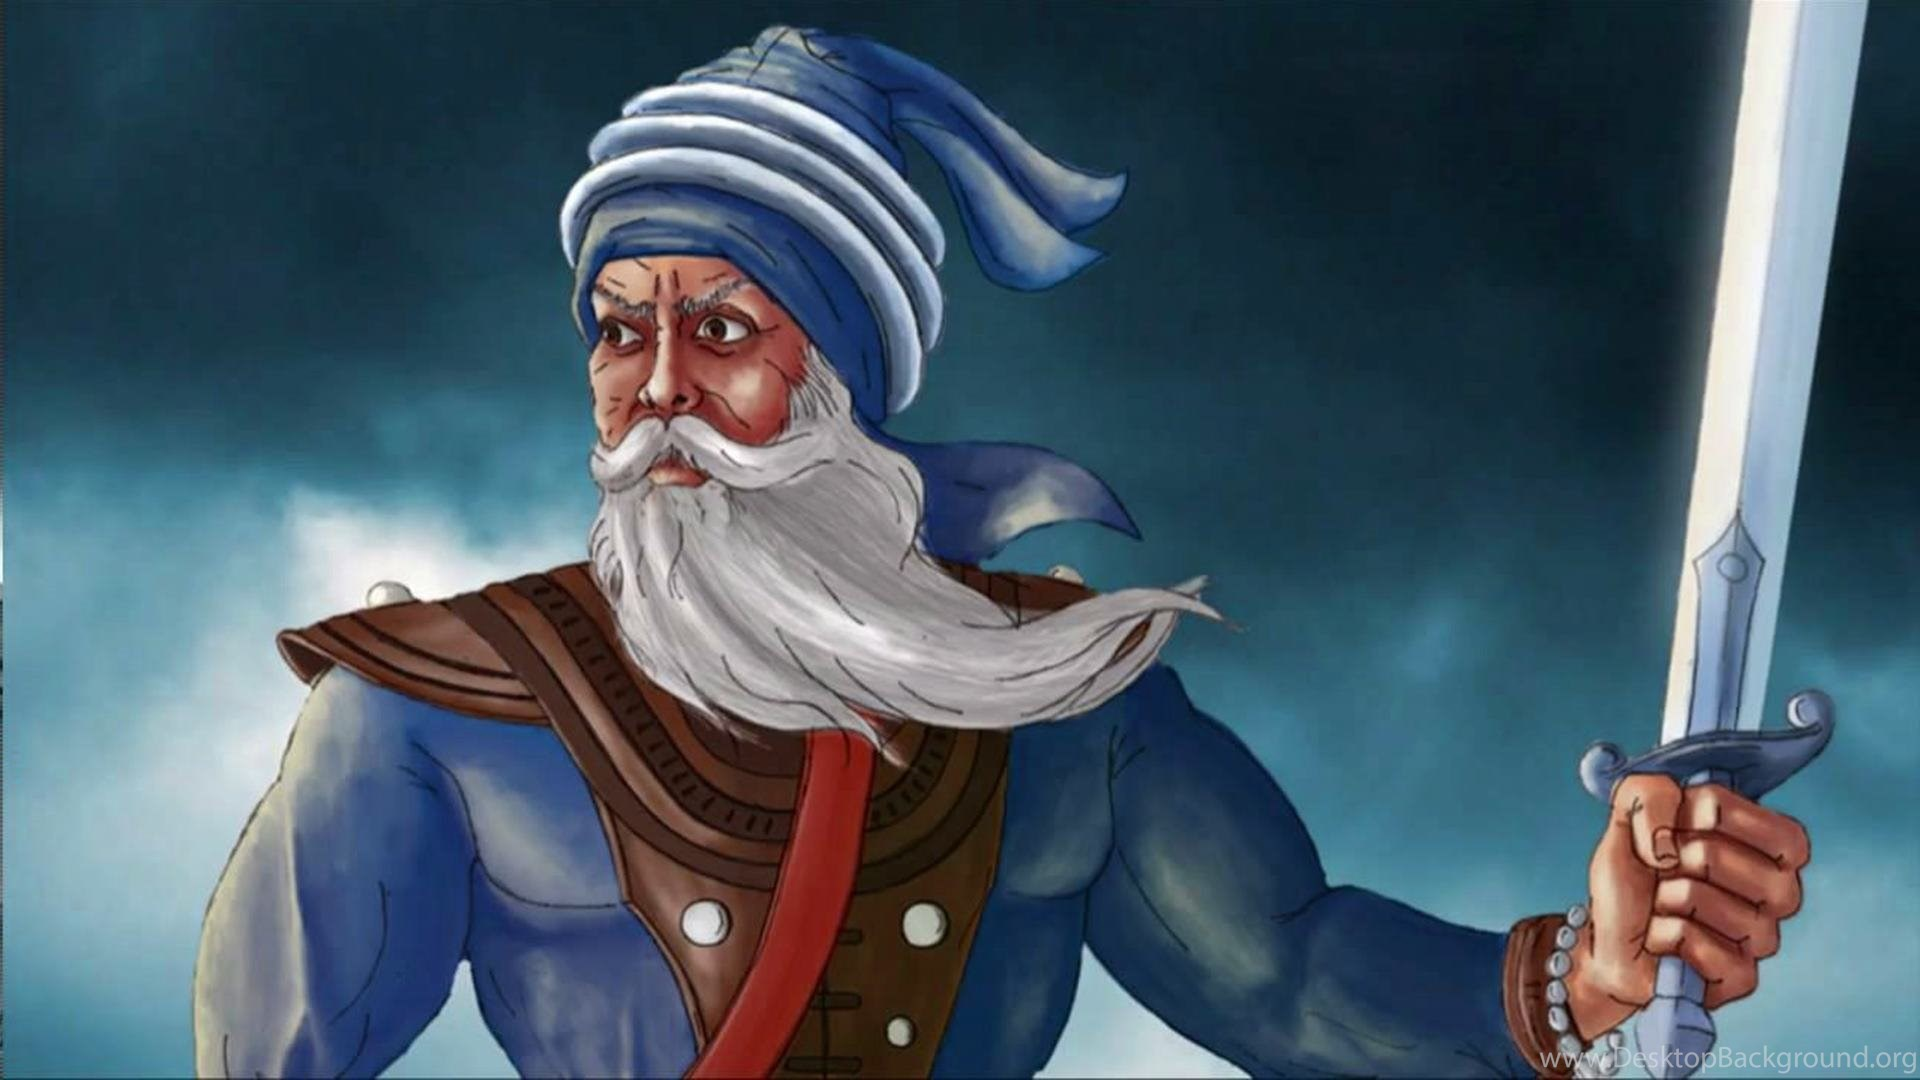 Shaheed Baba Deep Singh Ji Wallpapers Desktop Background